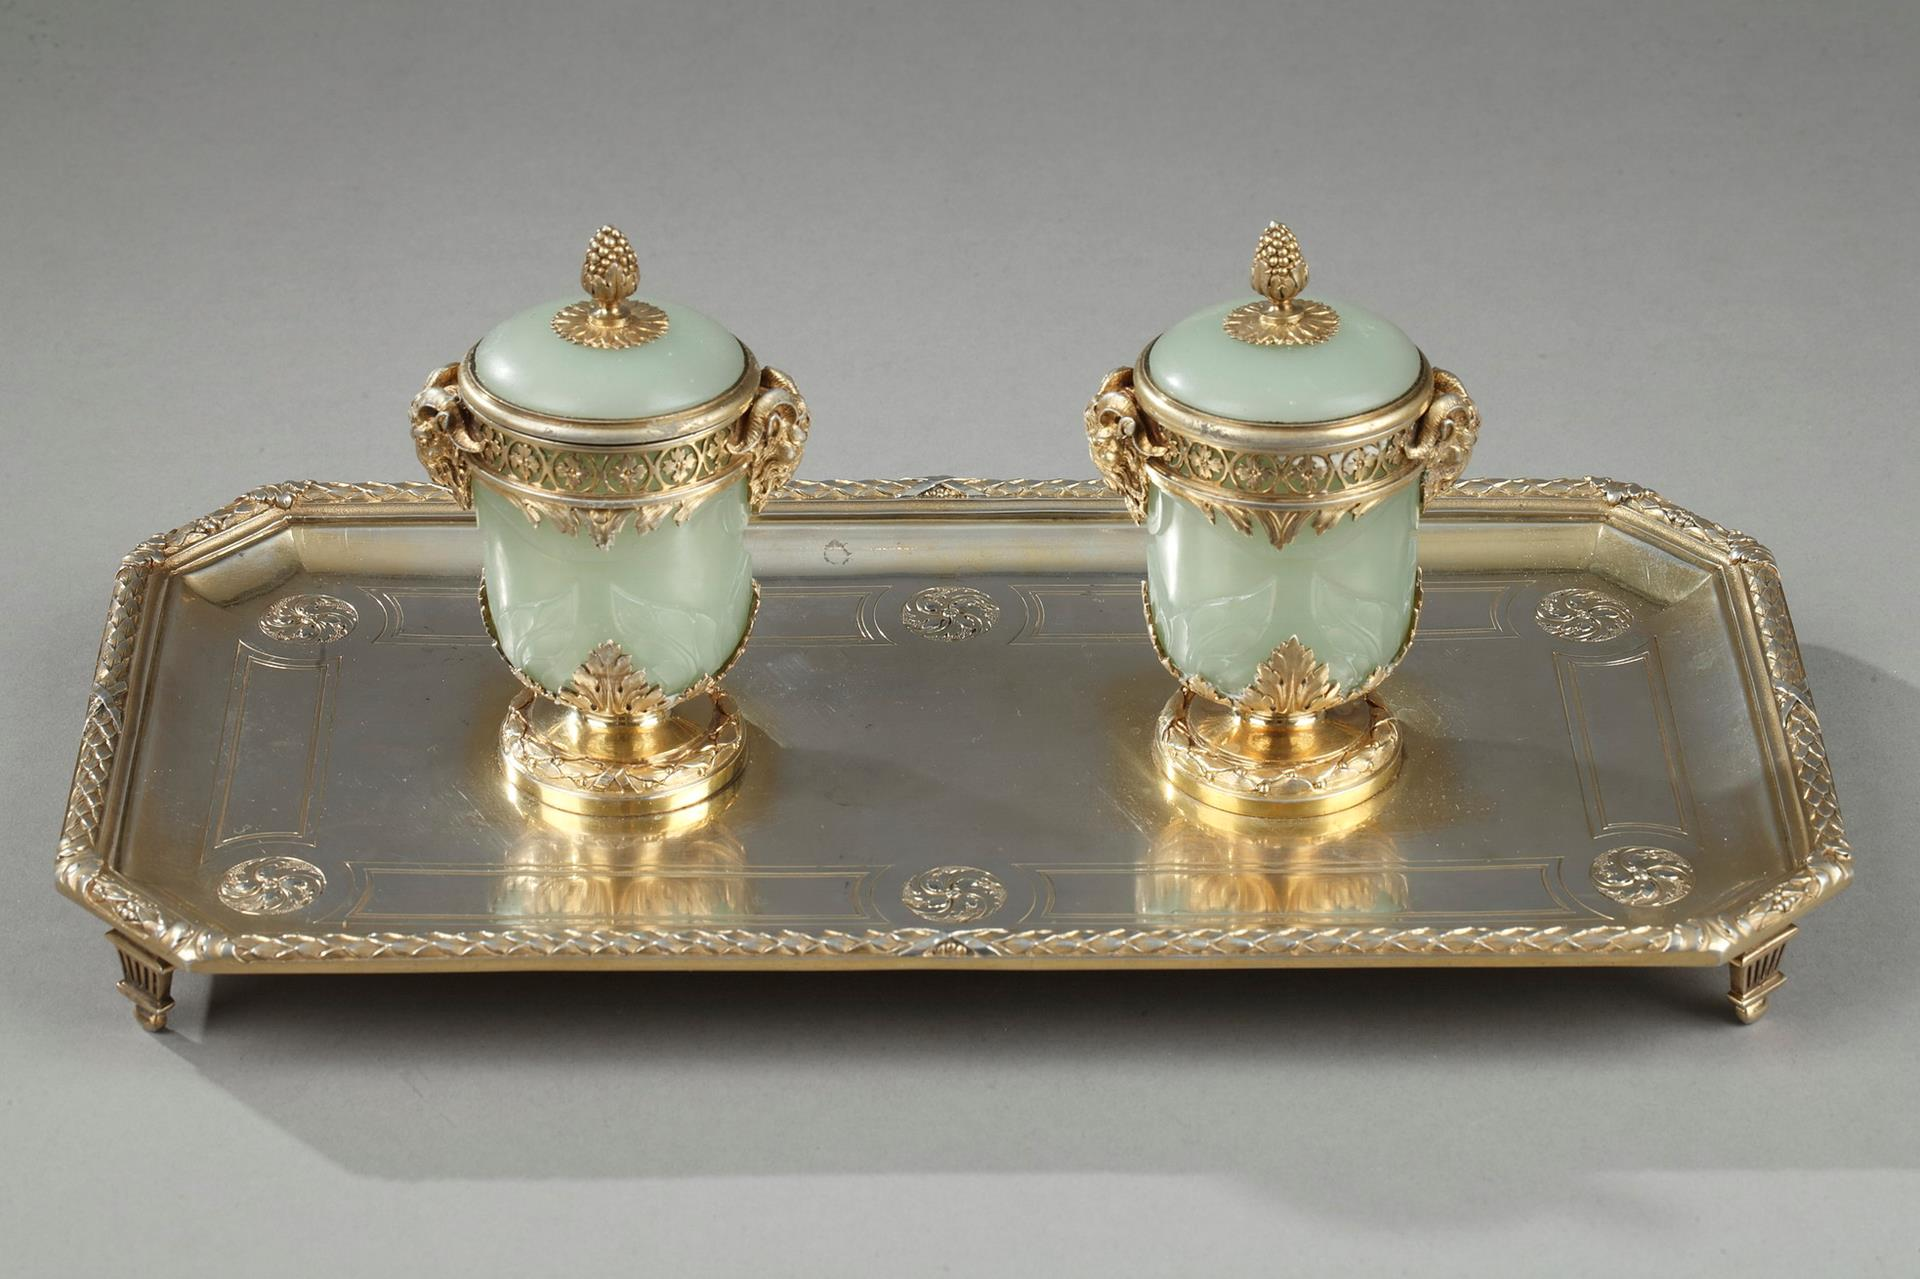 19th century inkstand in silver and jade. Boin Taburet.